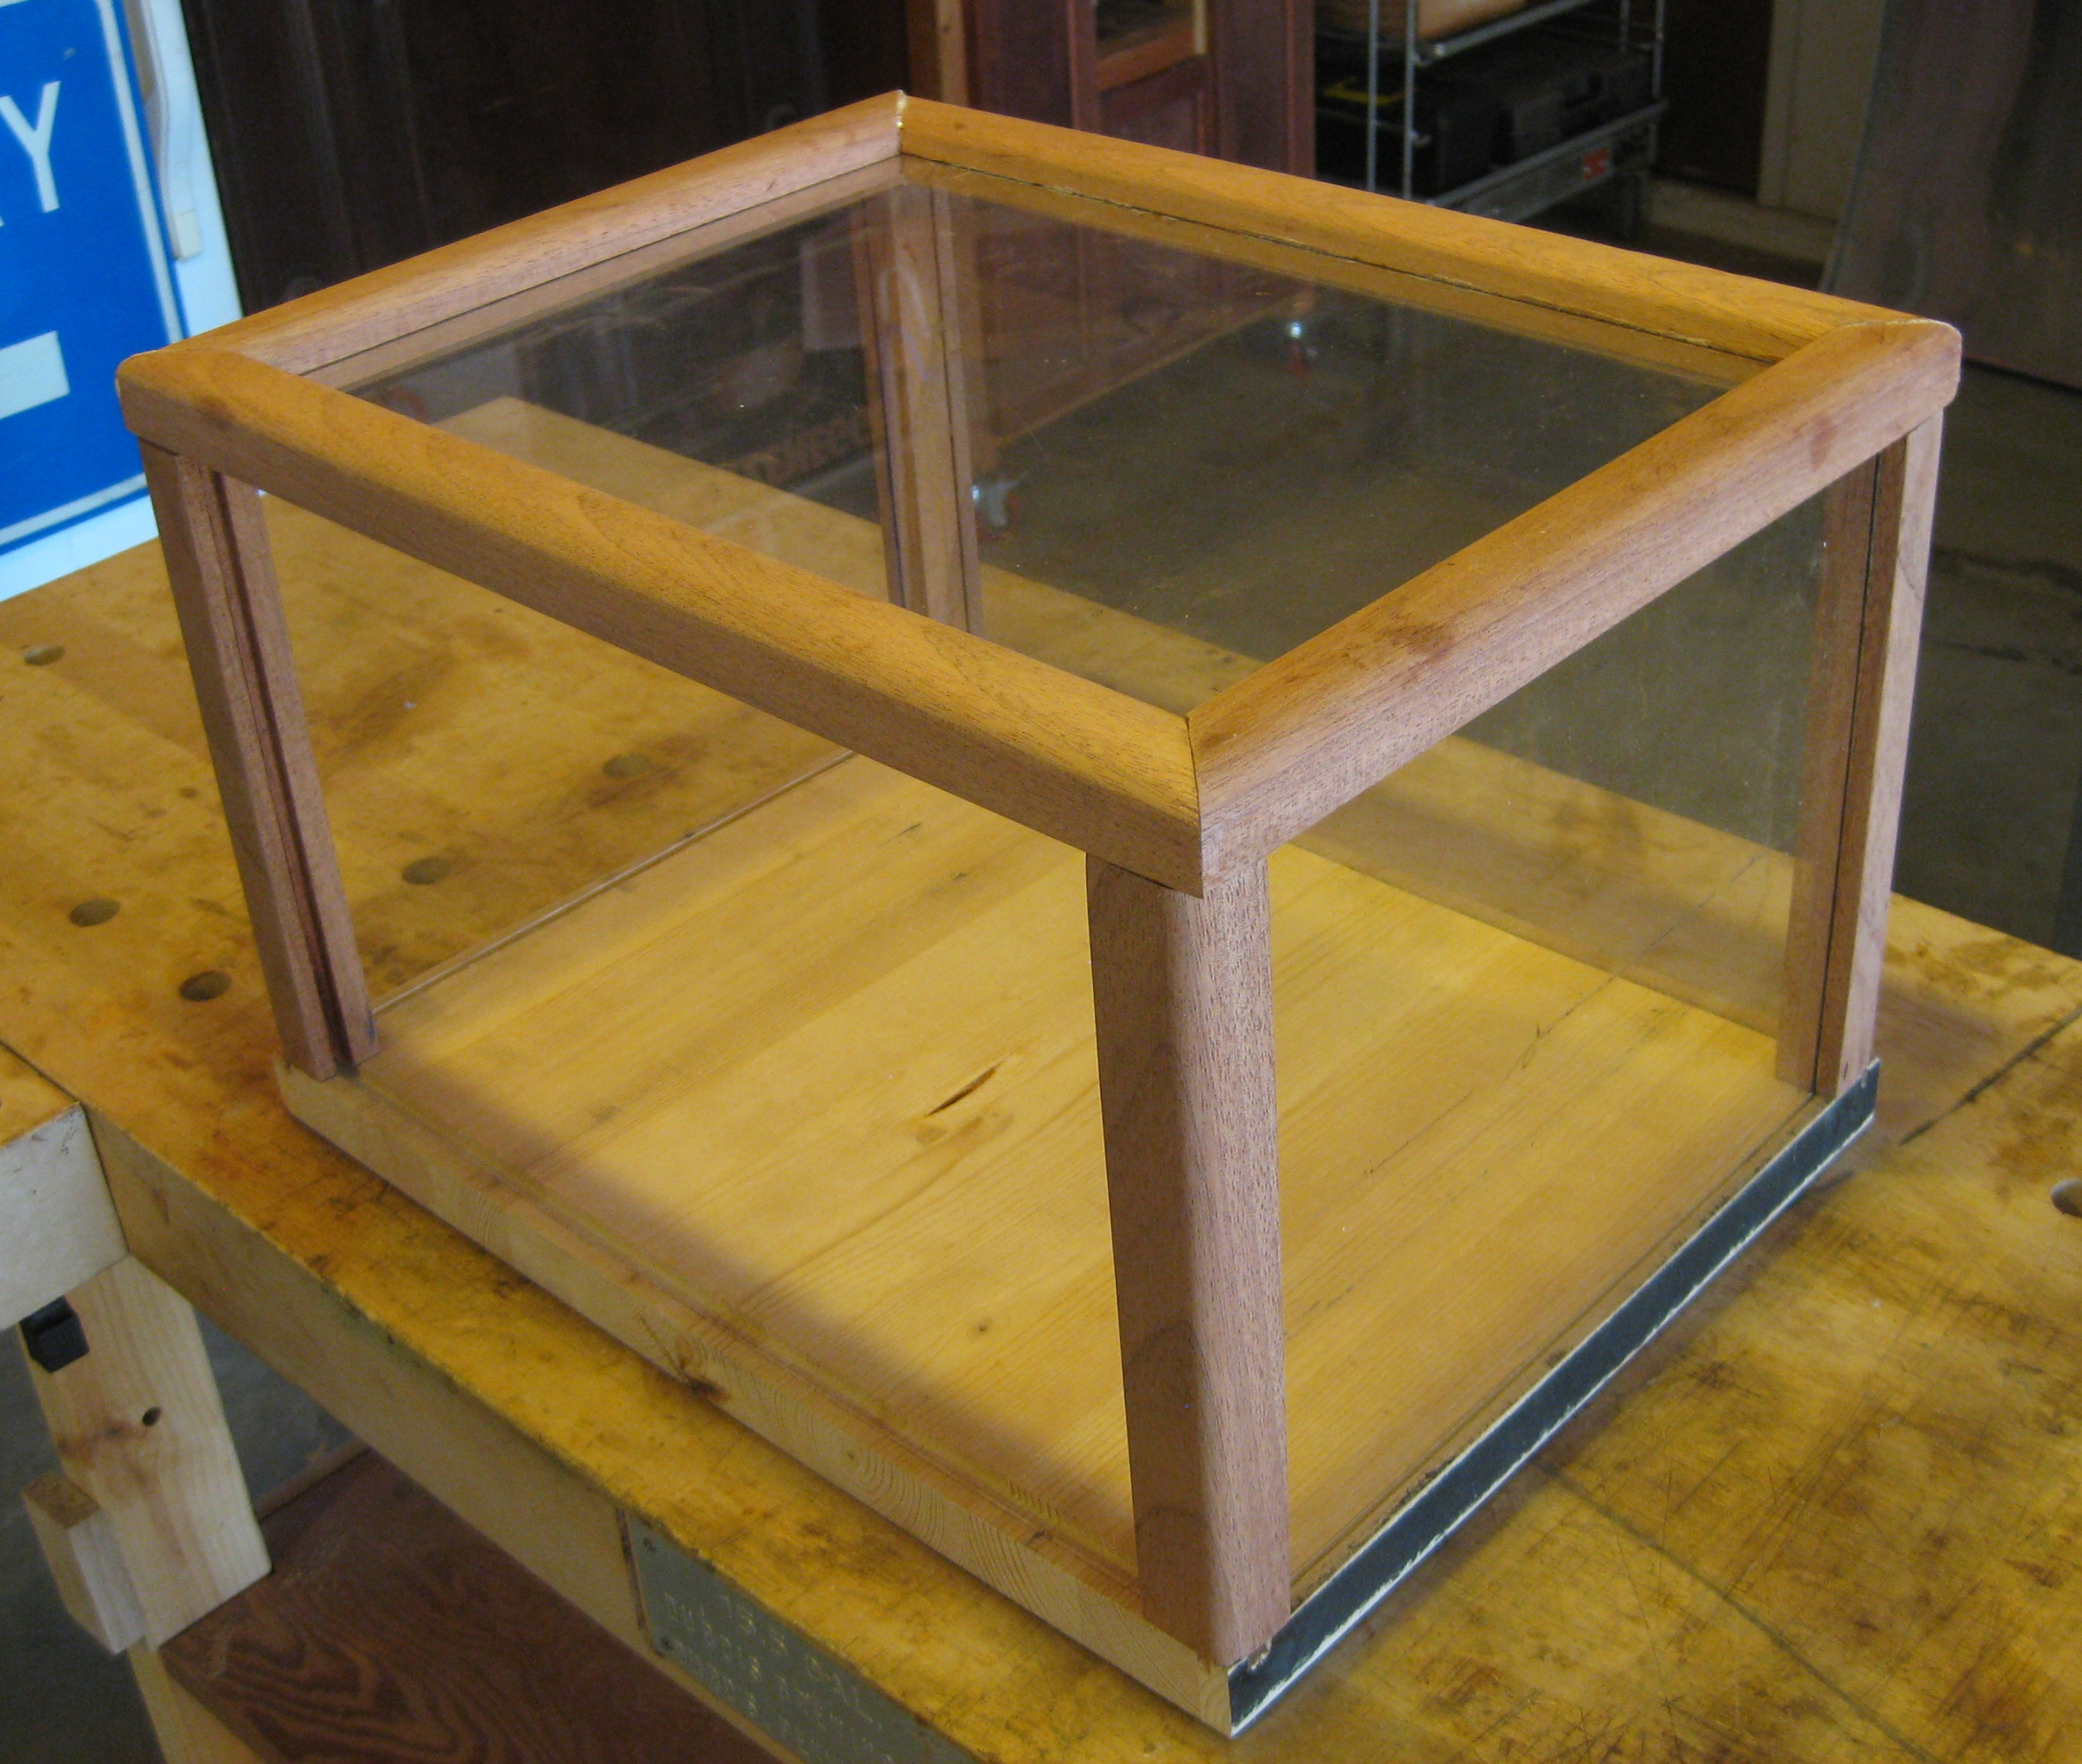 Table top display case - Shown Here Are The Essential Parts Of The Case The Floor Four Uprights And